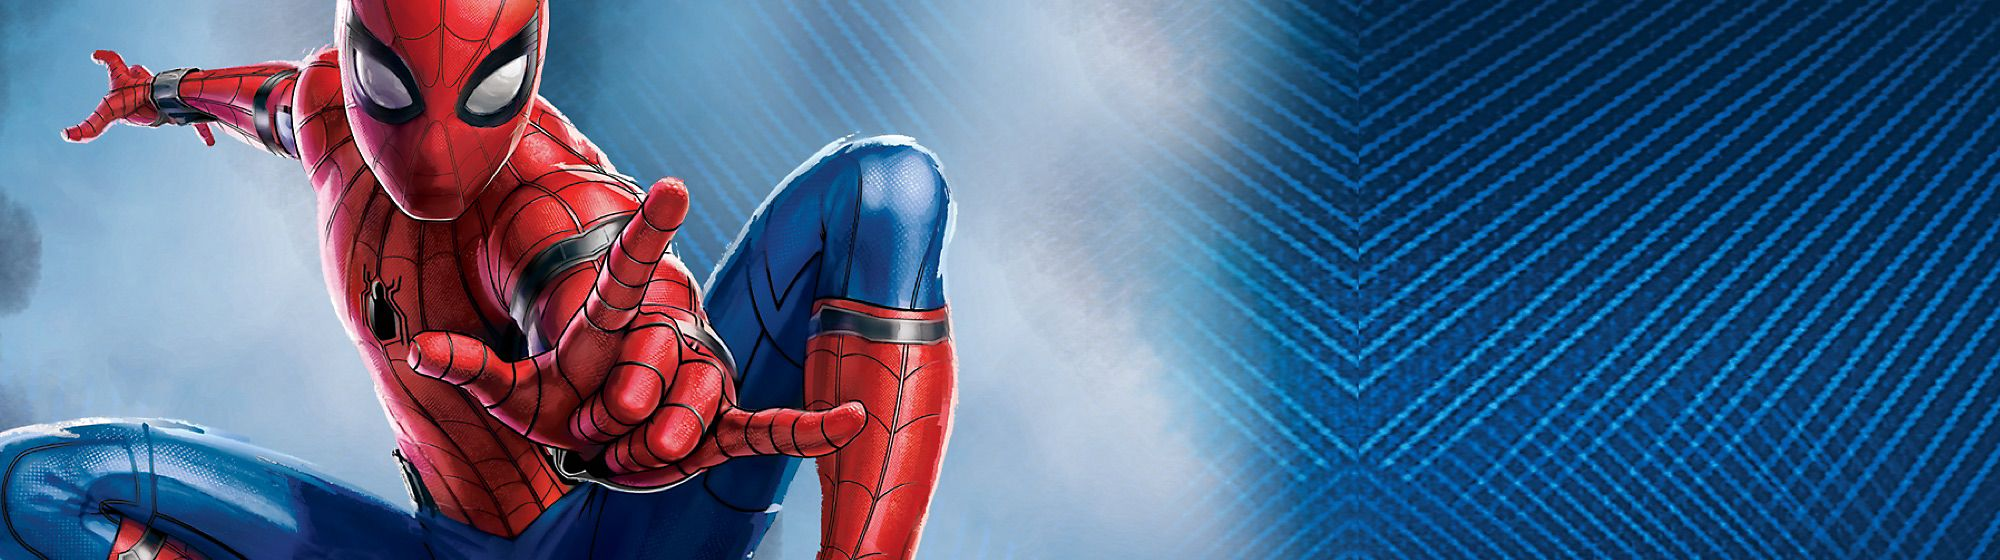 Spider-Man Discover the exciting world of Marvel with our Spider-Man merchandise, including figurines, clothing and toys.